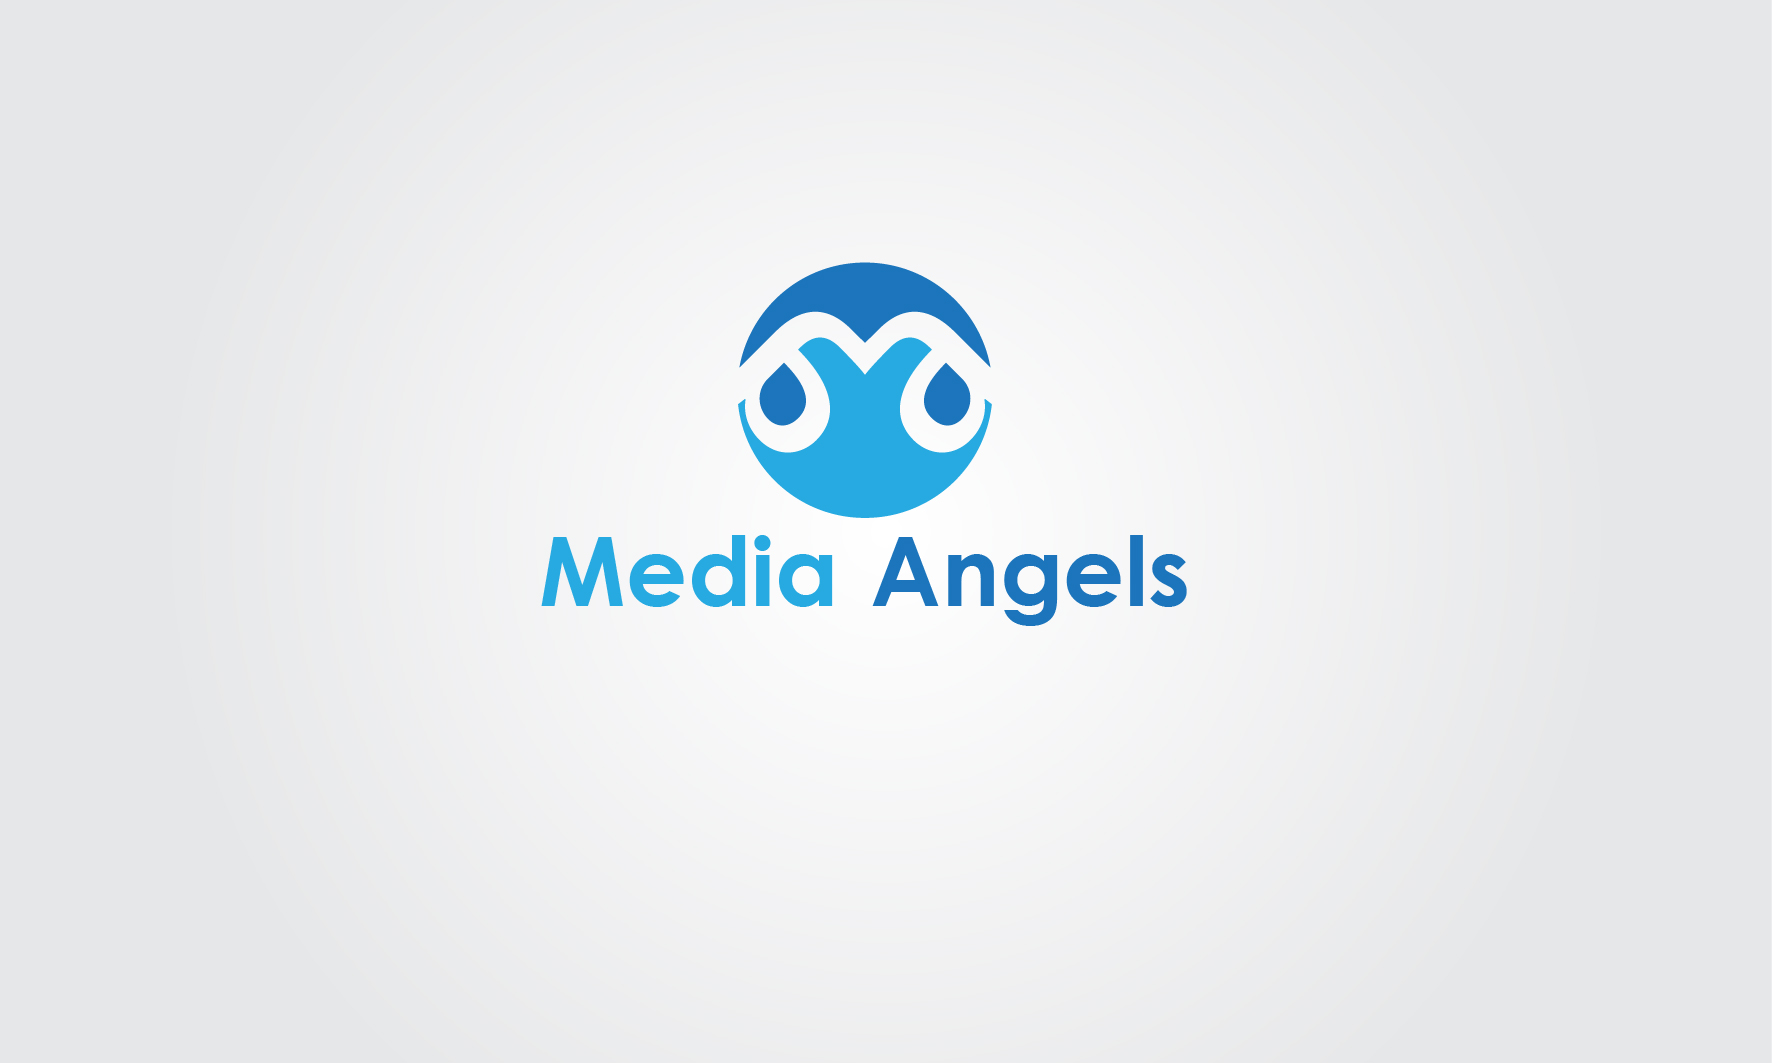 Logo Design by 3draw - Entry No. 215 in the Logo Design Contest New Logo Design for Media Angels.